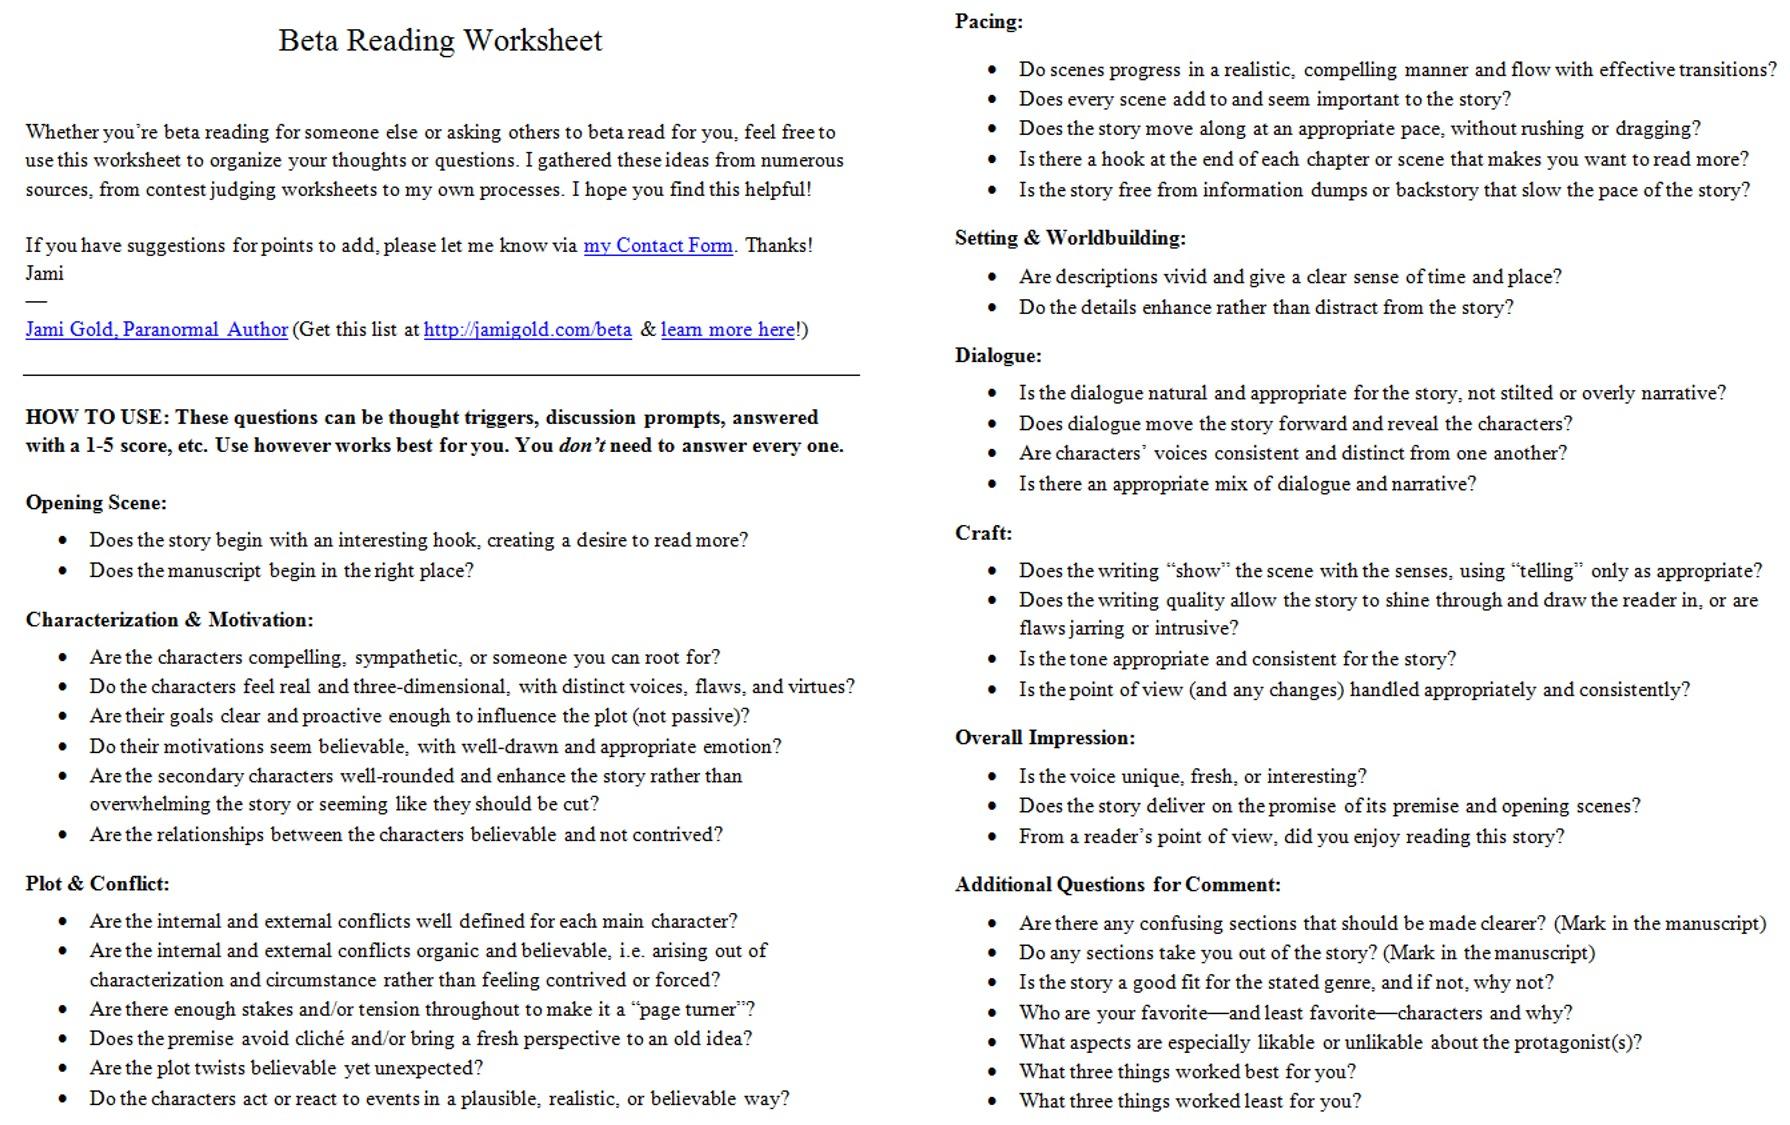 Aldiablosus  Seductive Worksheets For Writers  Jami Gold Paranormal Author With Exciting Screen Shot Of The Twopage Beta Reading Worksheet With Appealing Noun Pronoun Adjective Worksheet Also Calculating Wages Worksheets In Addition Prep English Worksheets And Tally Chart Worksheets Rd Grade As Well As Rhyming Words Worksheets For Grade  Additionally Tally Chart Worksheets Ks From Jamigoldcom With Aldiablosus  Exciting Worksheets For Writers  Jami Gold Paranormal Author With Appealing Screen Shot Of The Twopage Beta Reading Worksheet And Seductive Noun Pronoun Adjective Worksheet Also Calculating Wages Worksheets In Addition Prep English Worksheets From Jamigoldcom